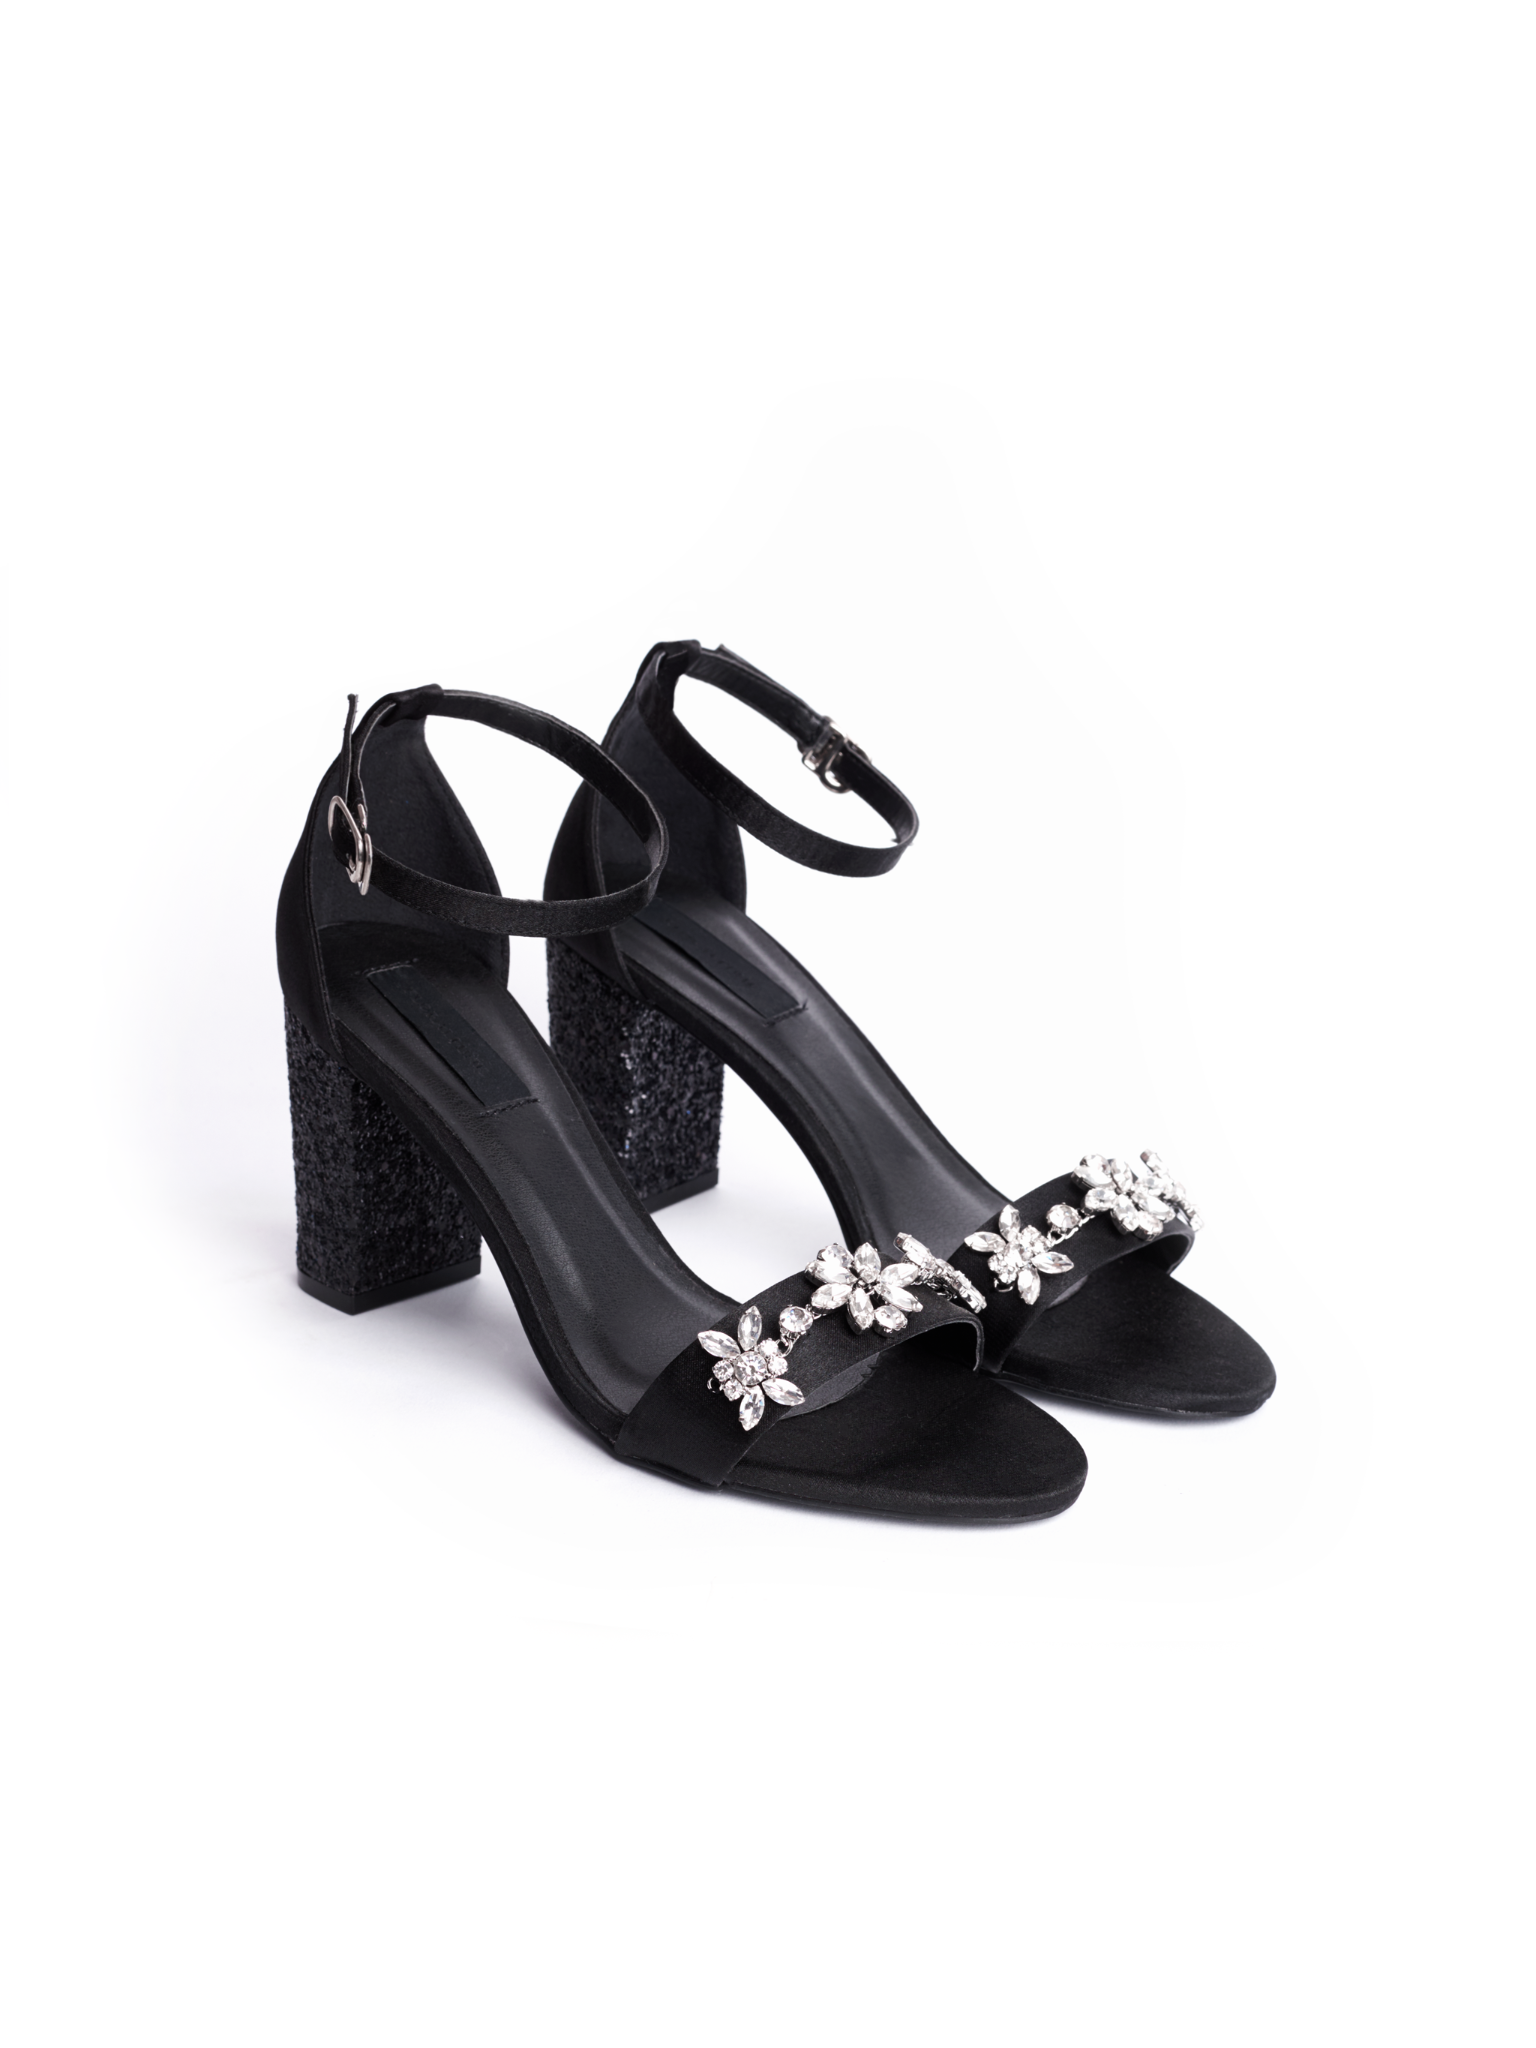 Flower Strappy Heels | black